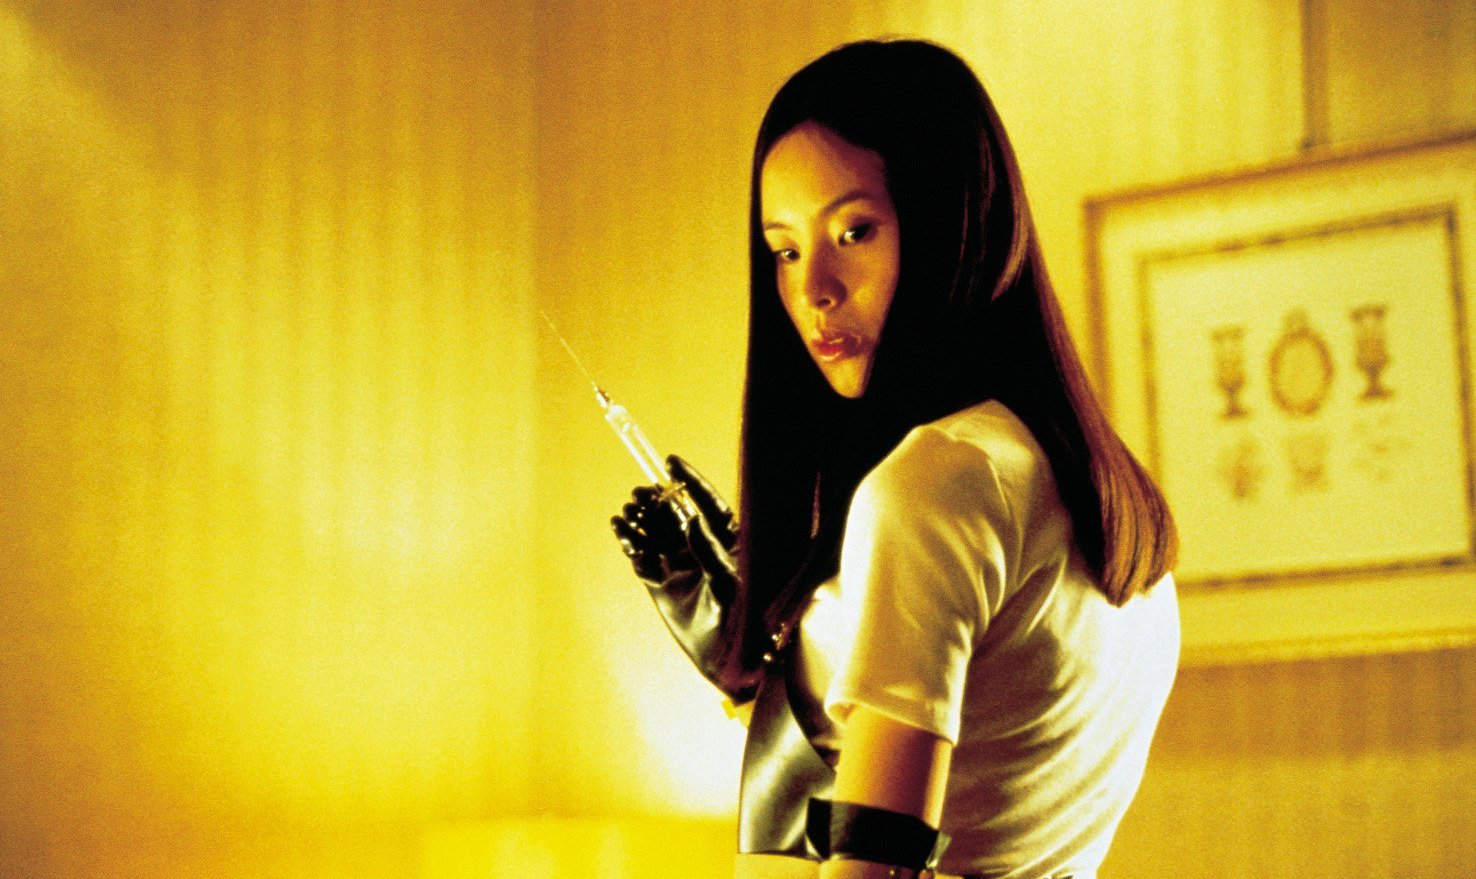 The Most Disturbing Films Ever Made